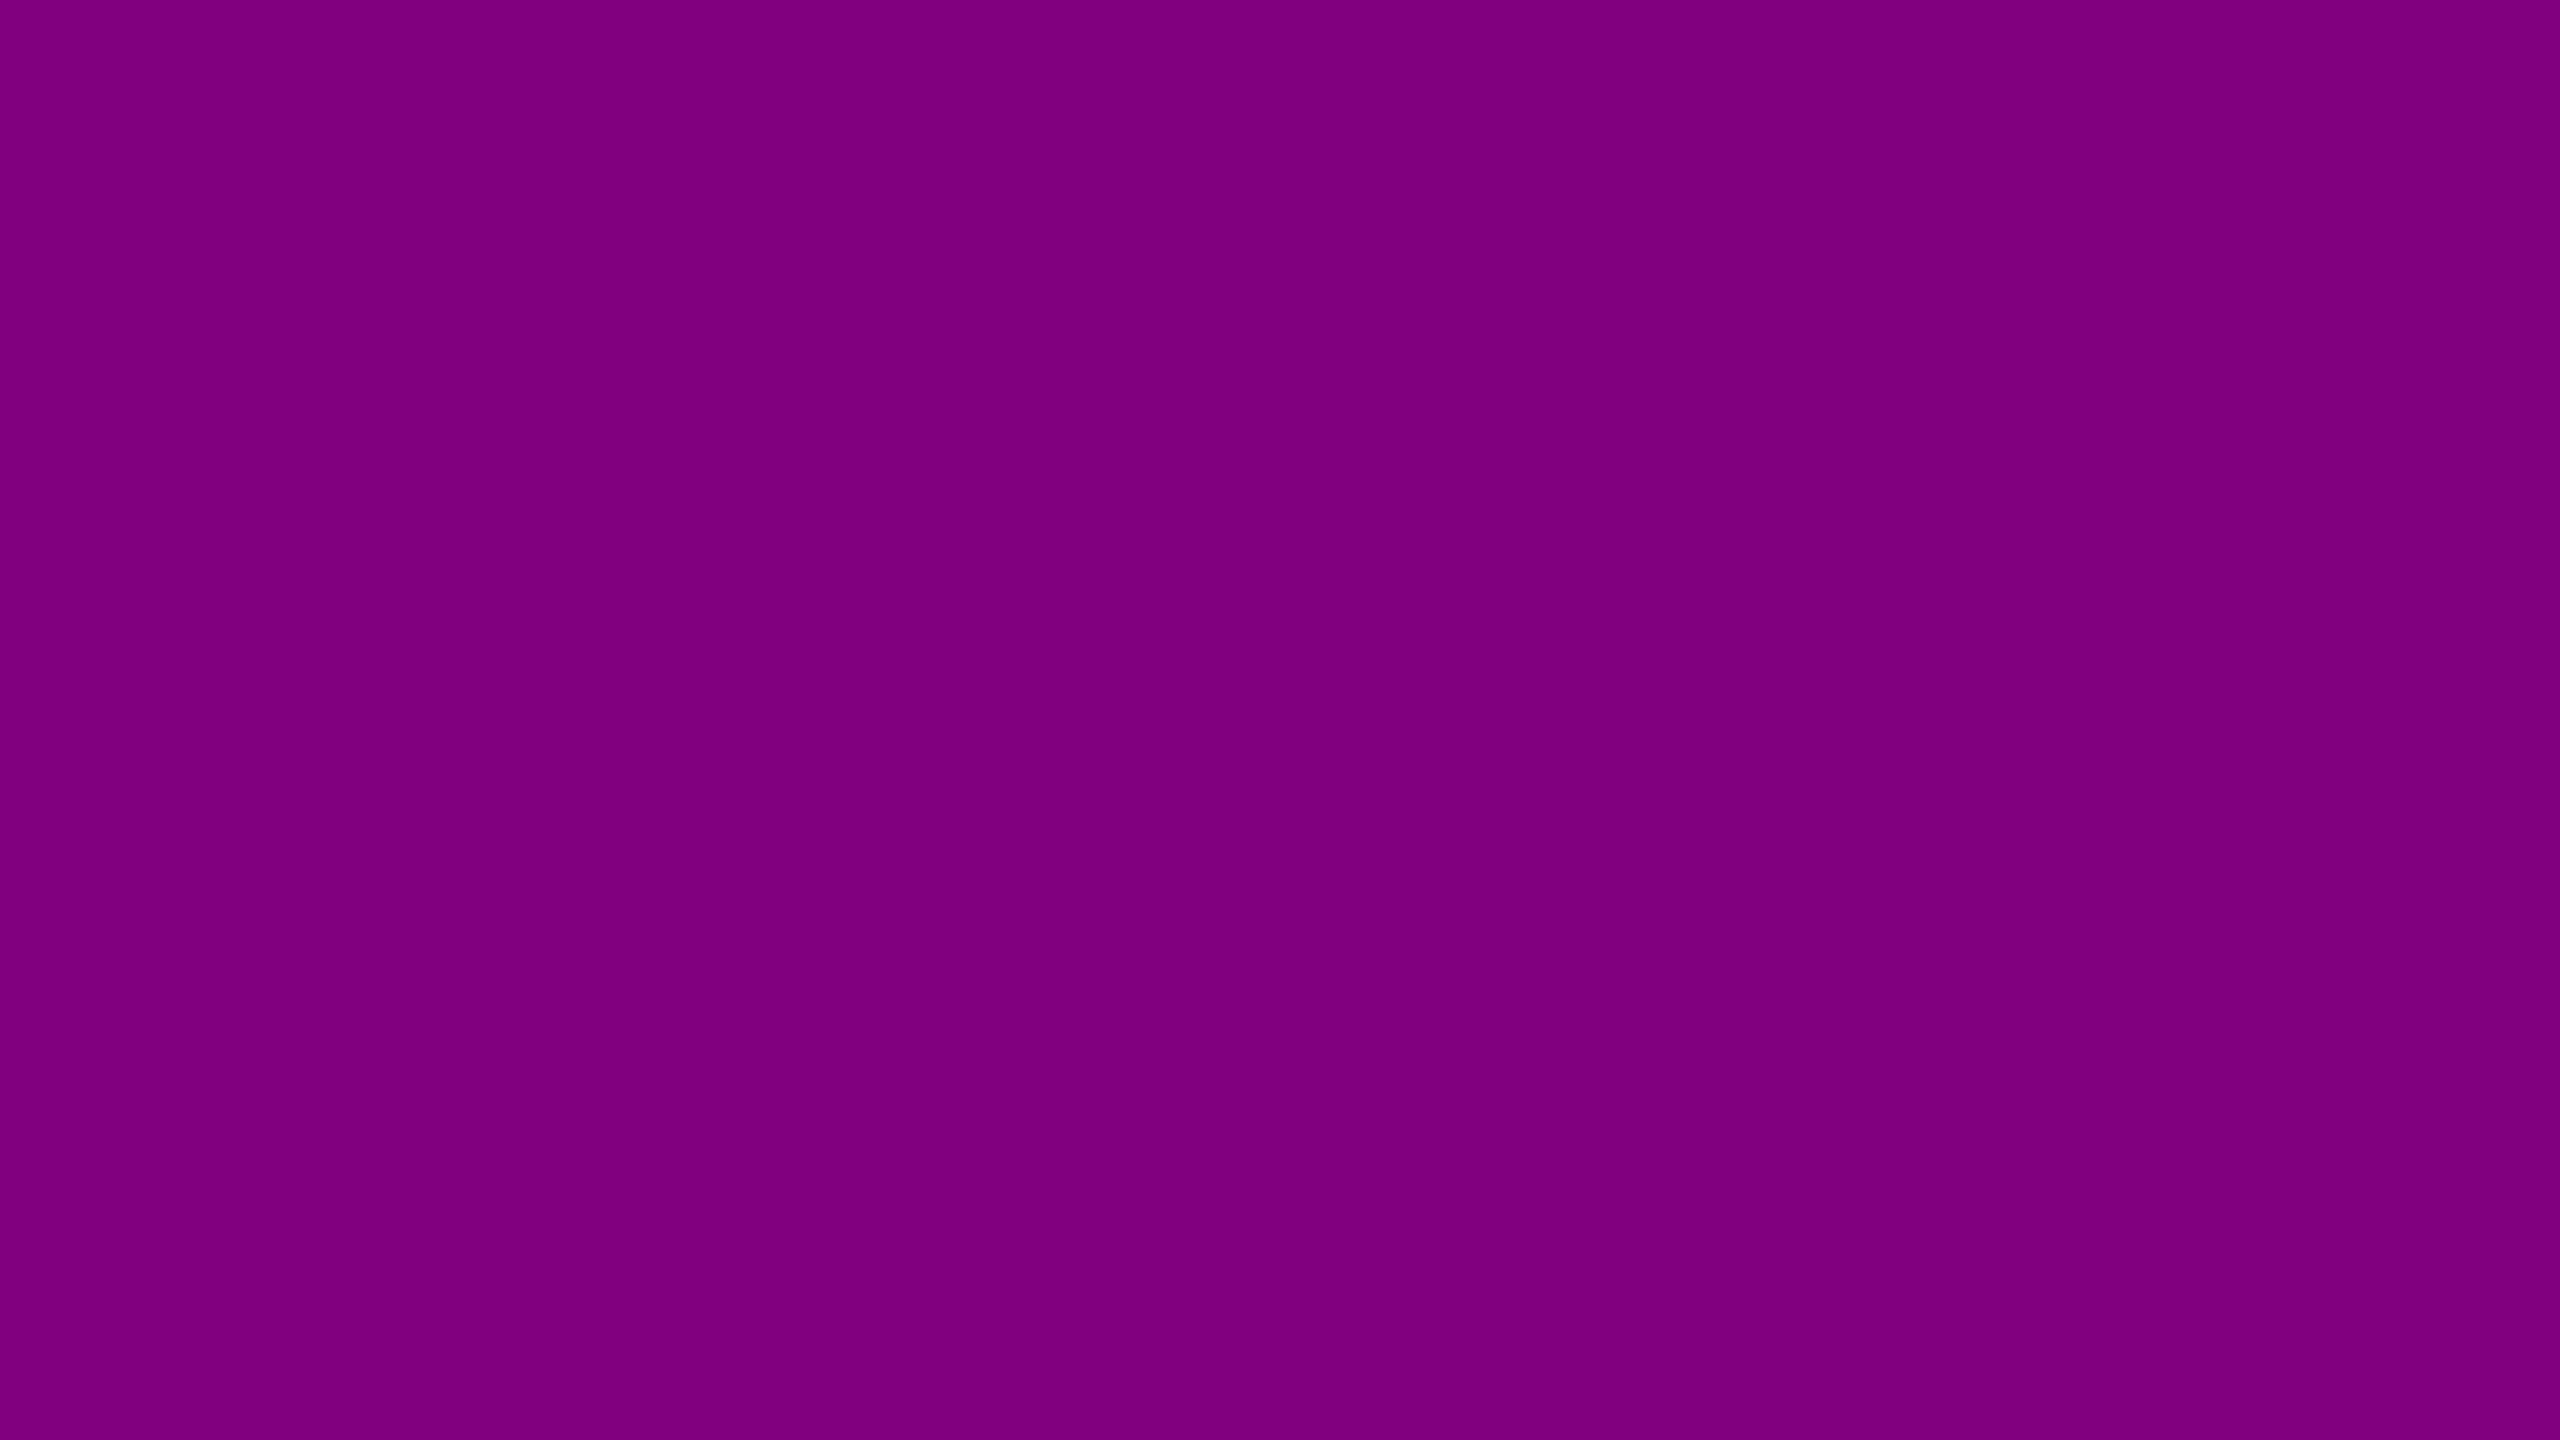 purple color background wallpapersafari